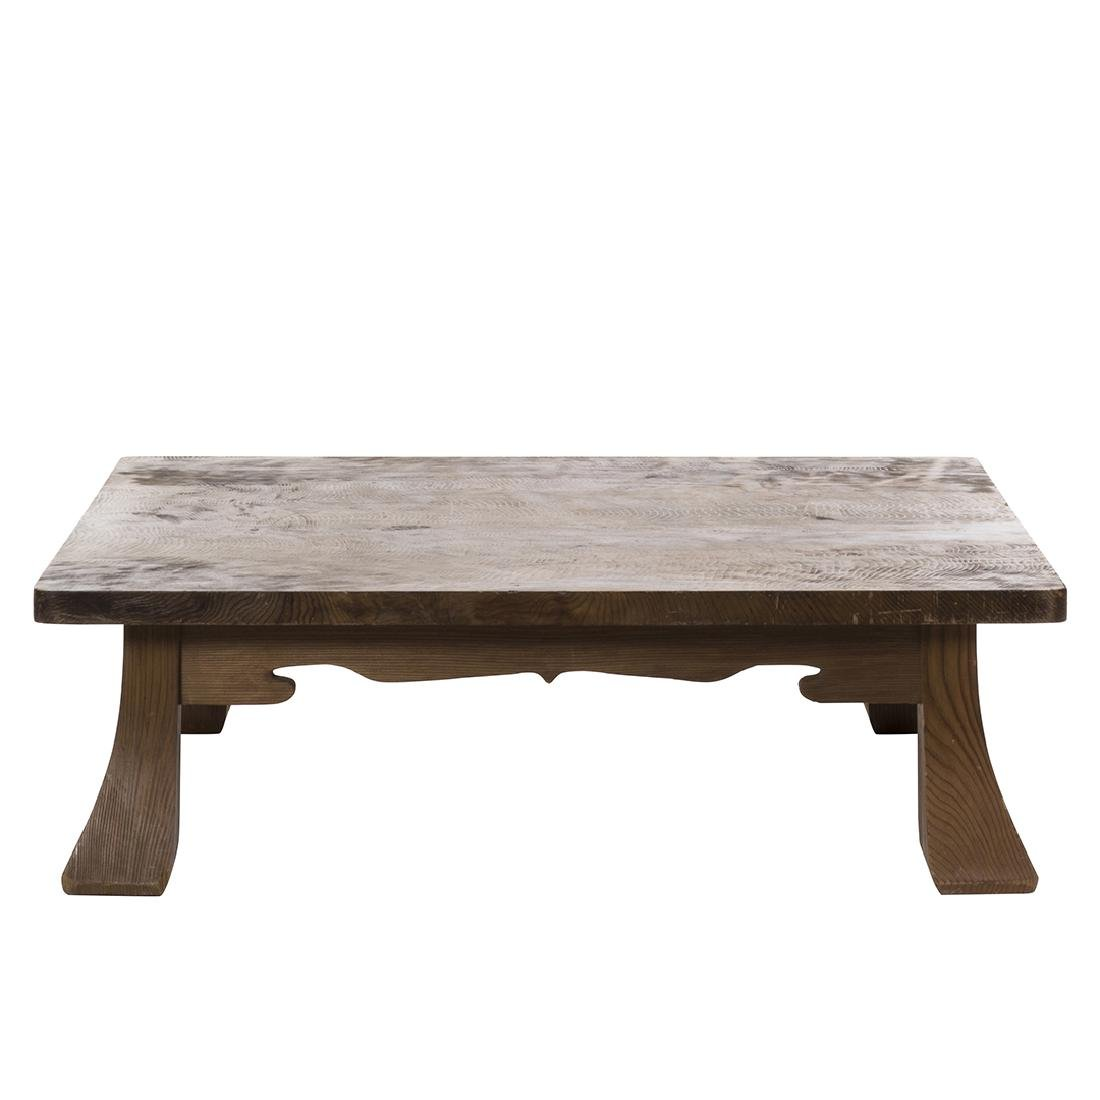 Low Craftsman Style Table